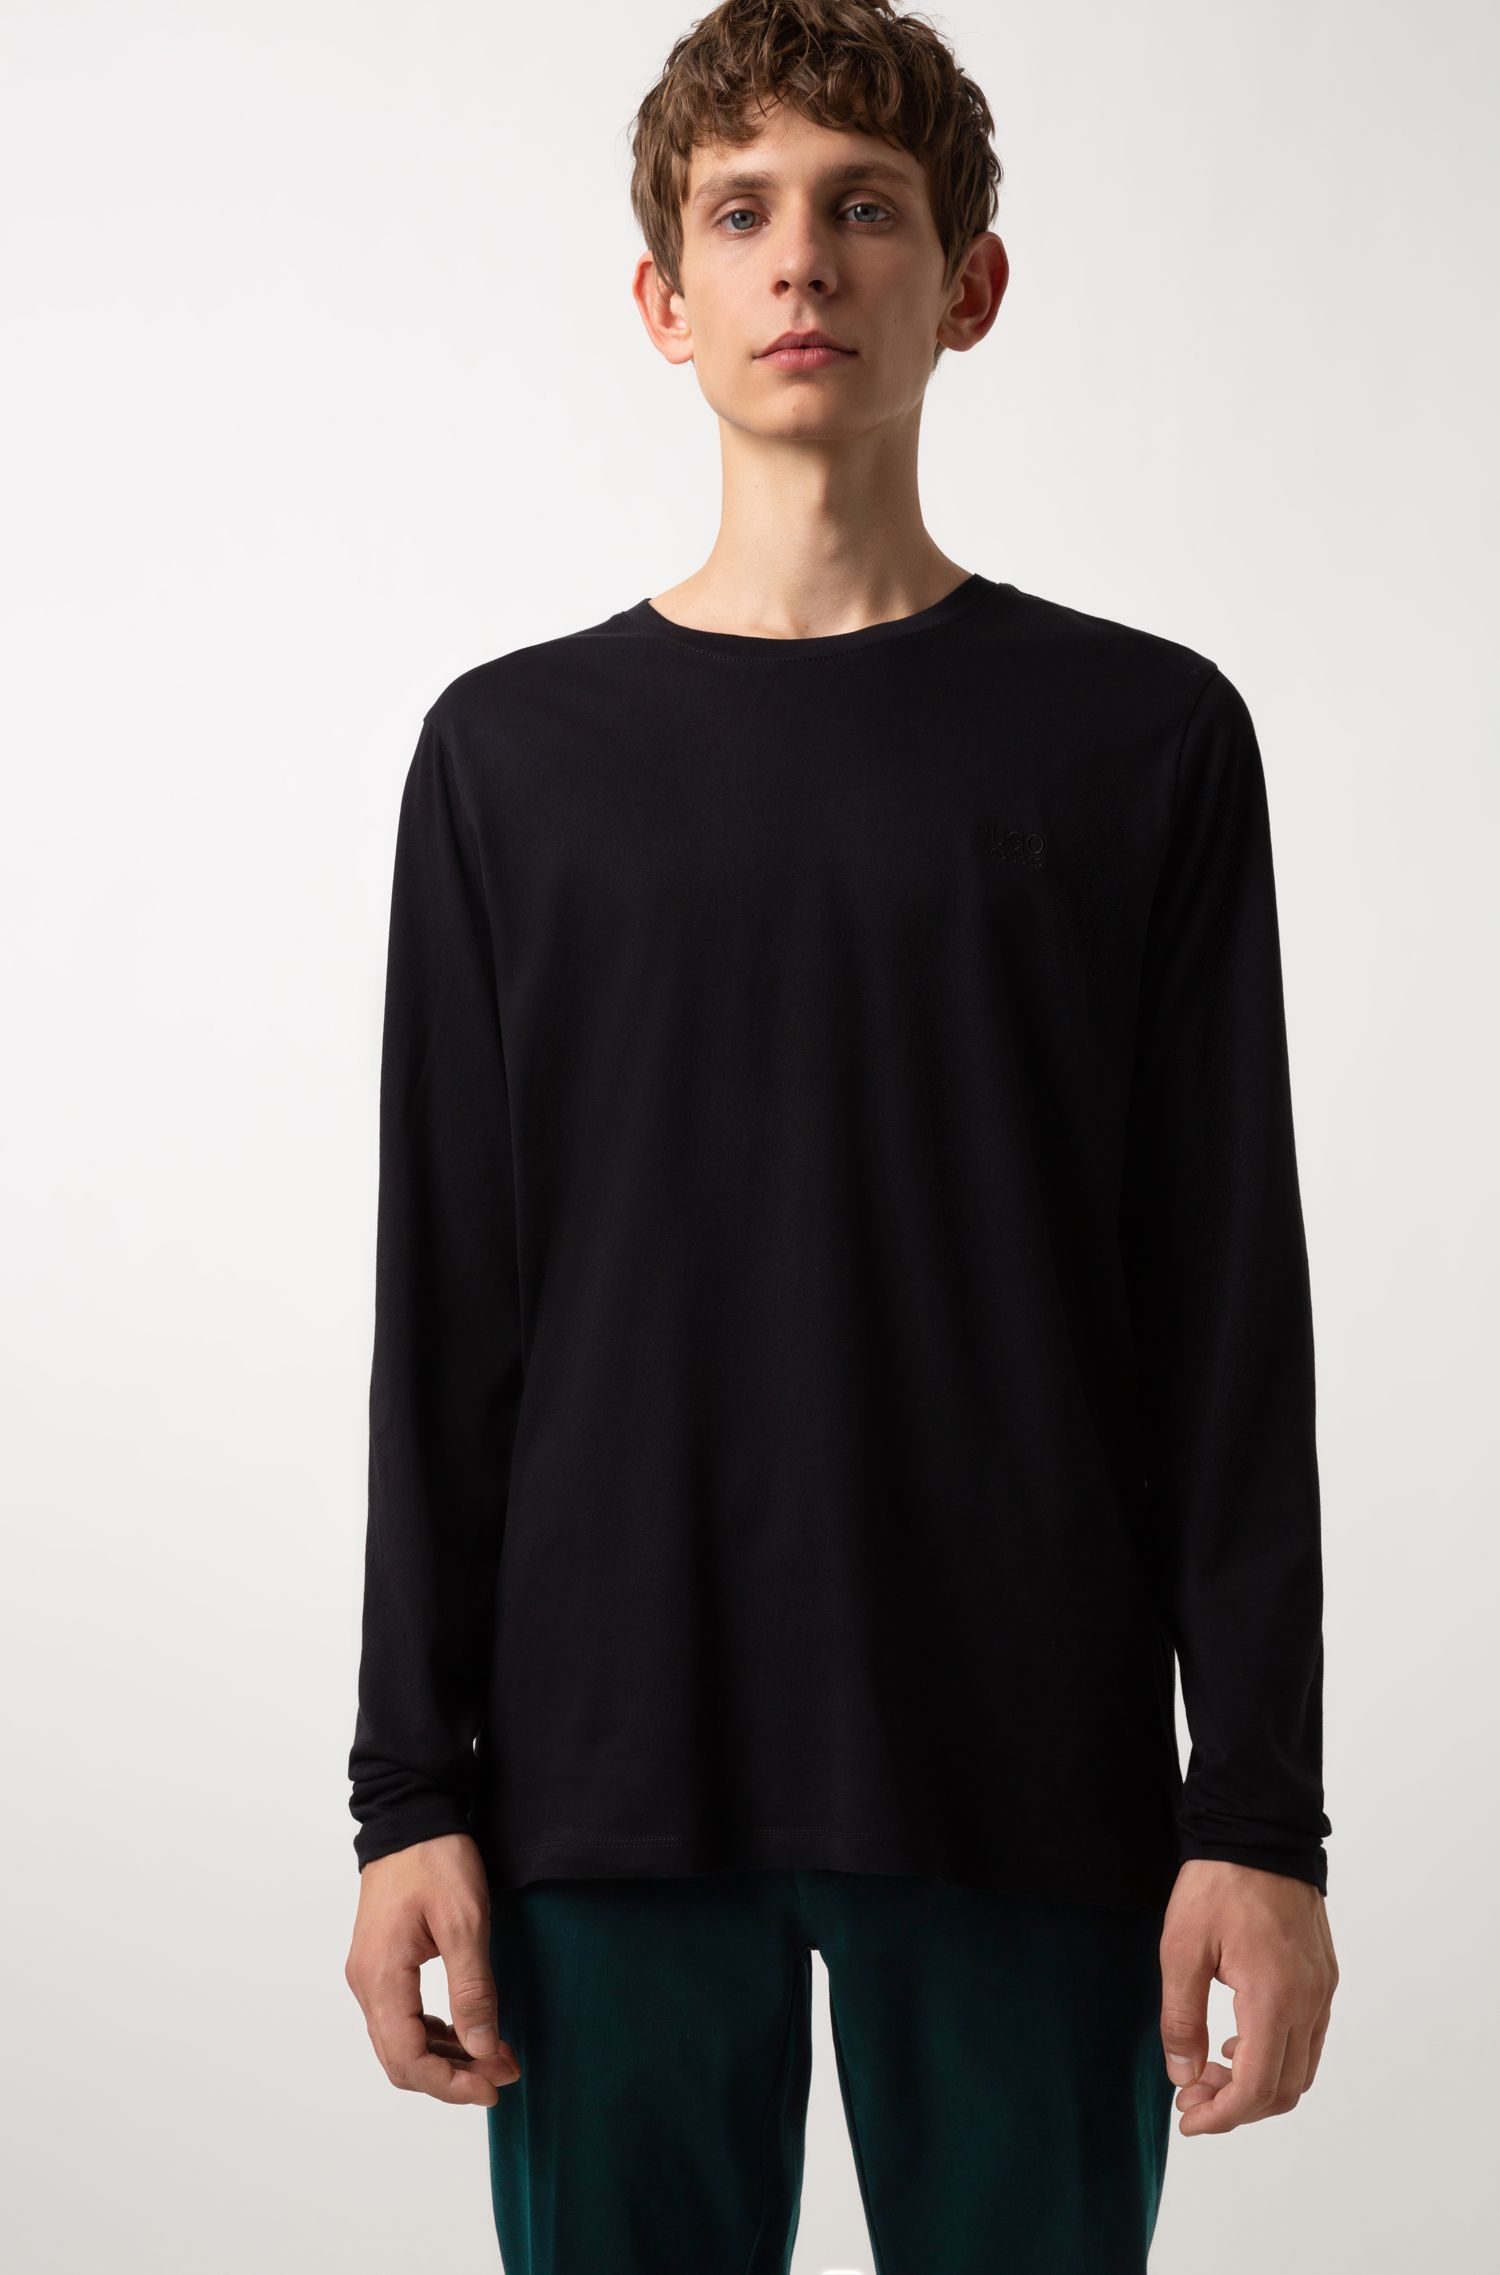 Cotton sweatshirt with left-chest logo, Black